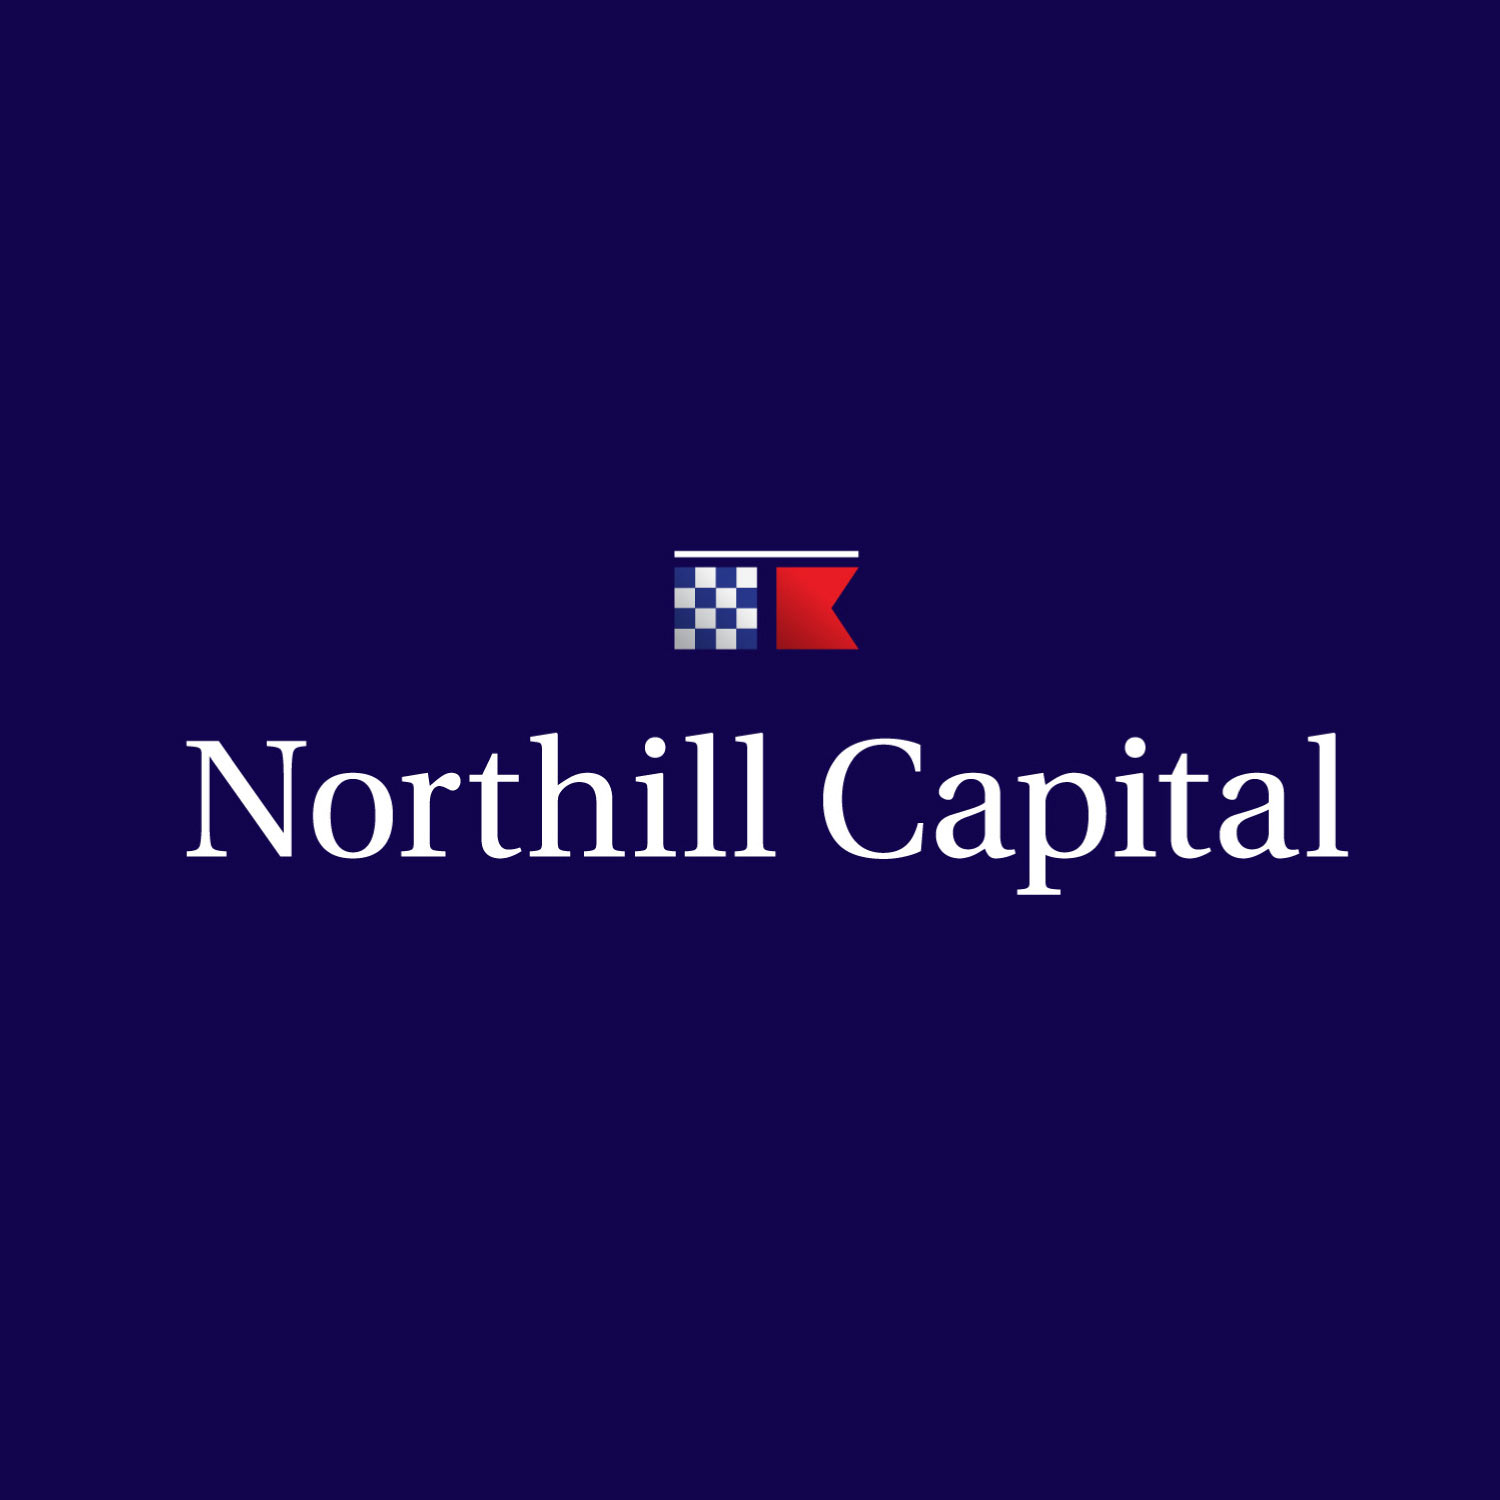 Northill Capital